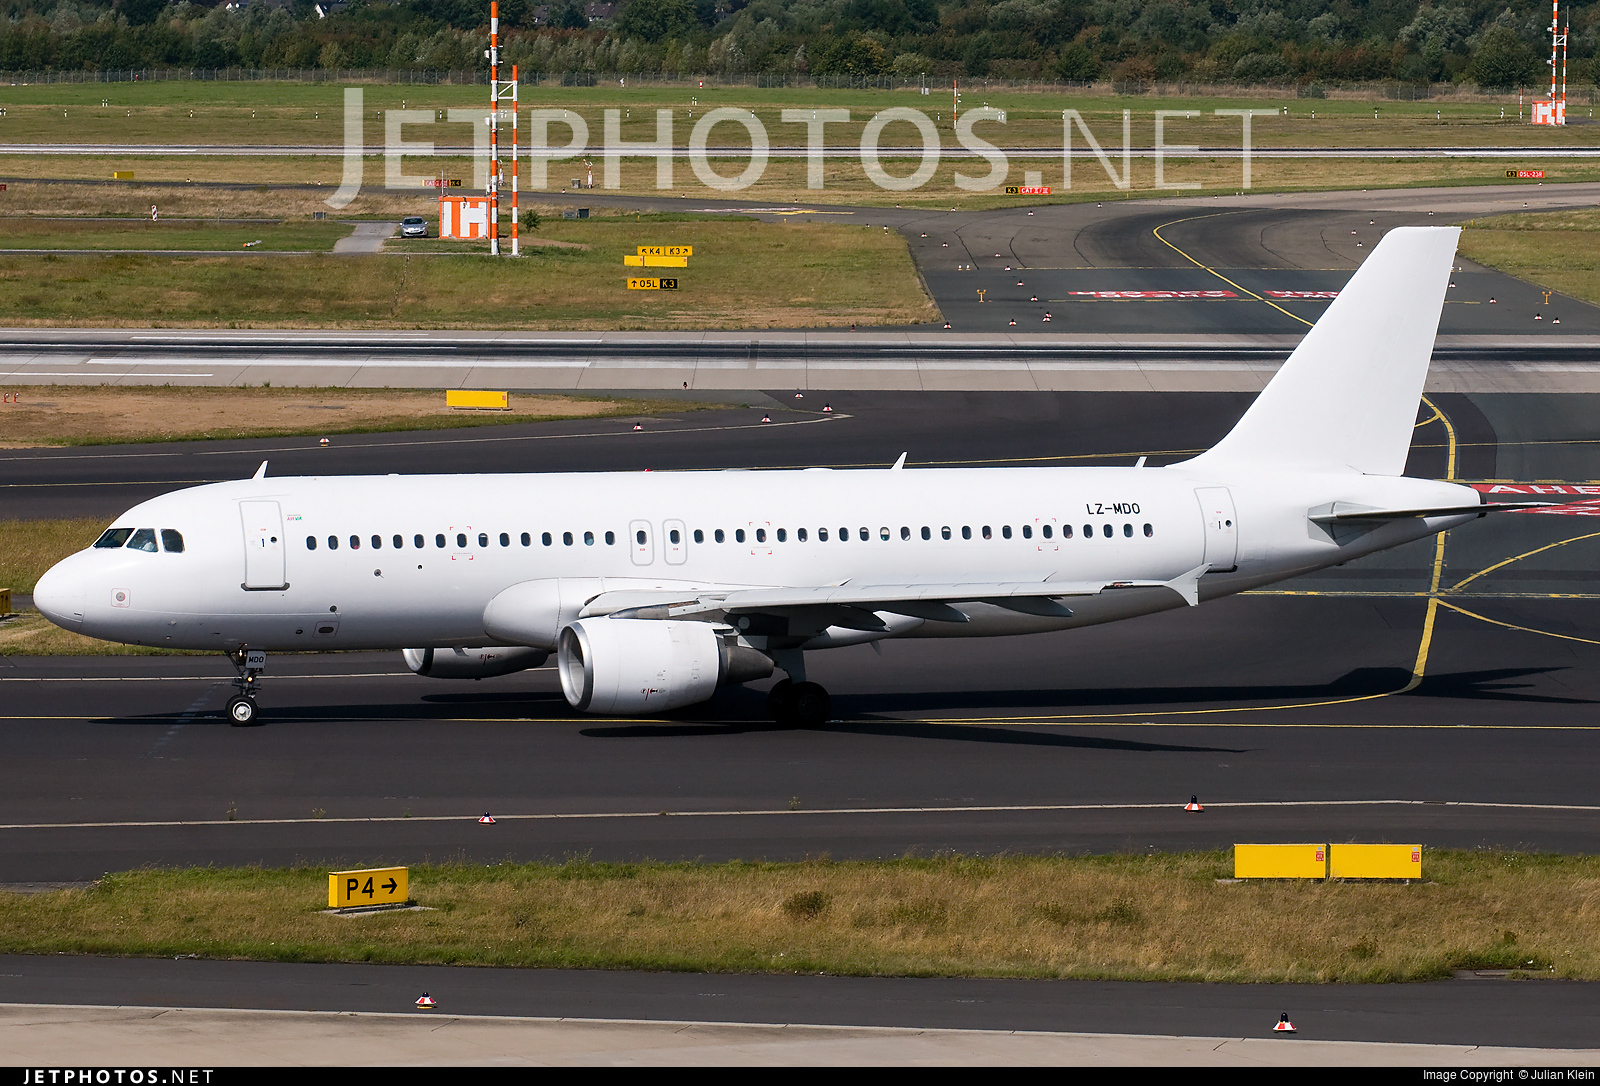 LZ-MDO - Airbus A320-214 - Air Via